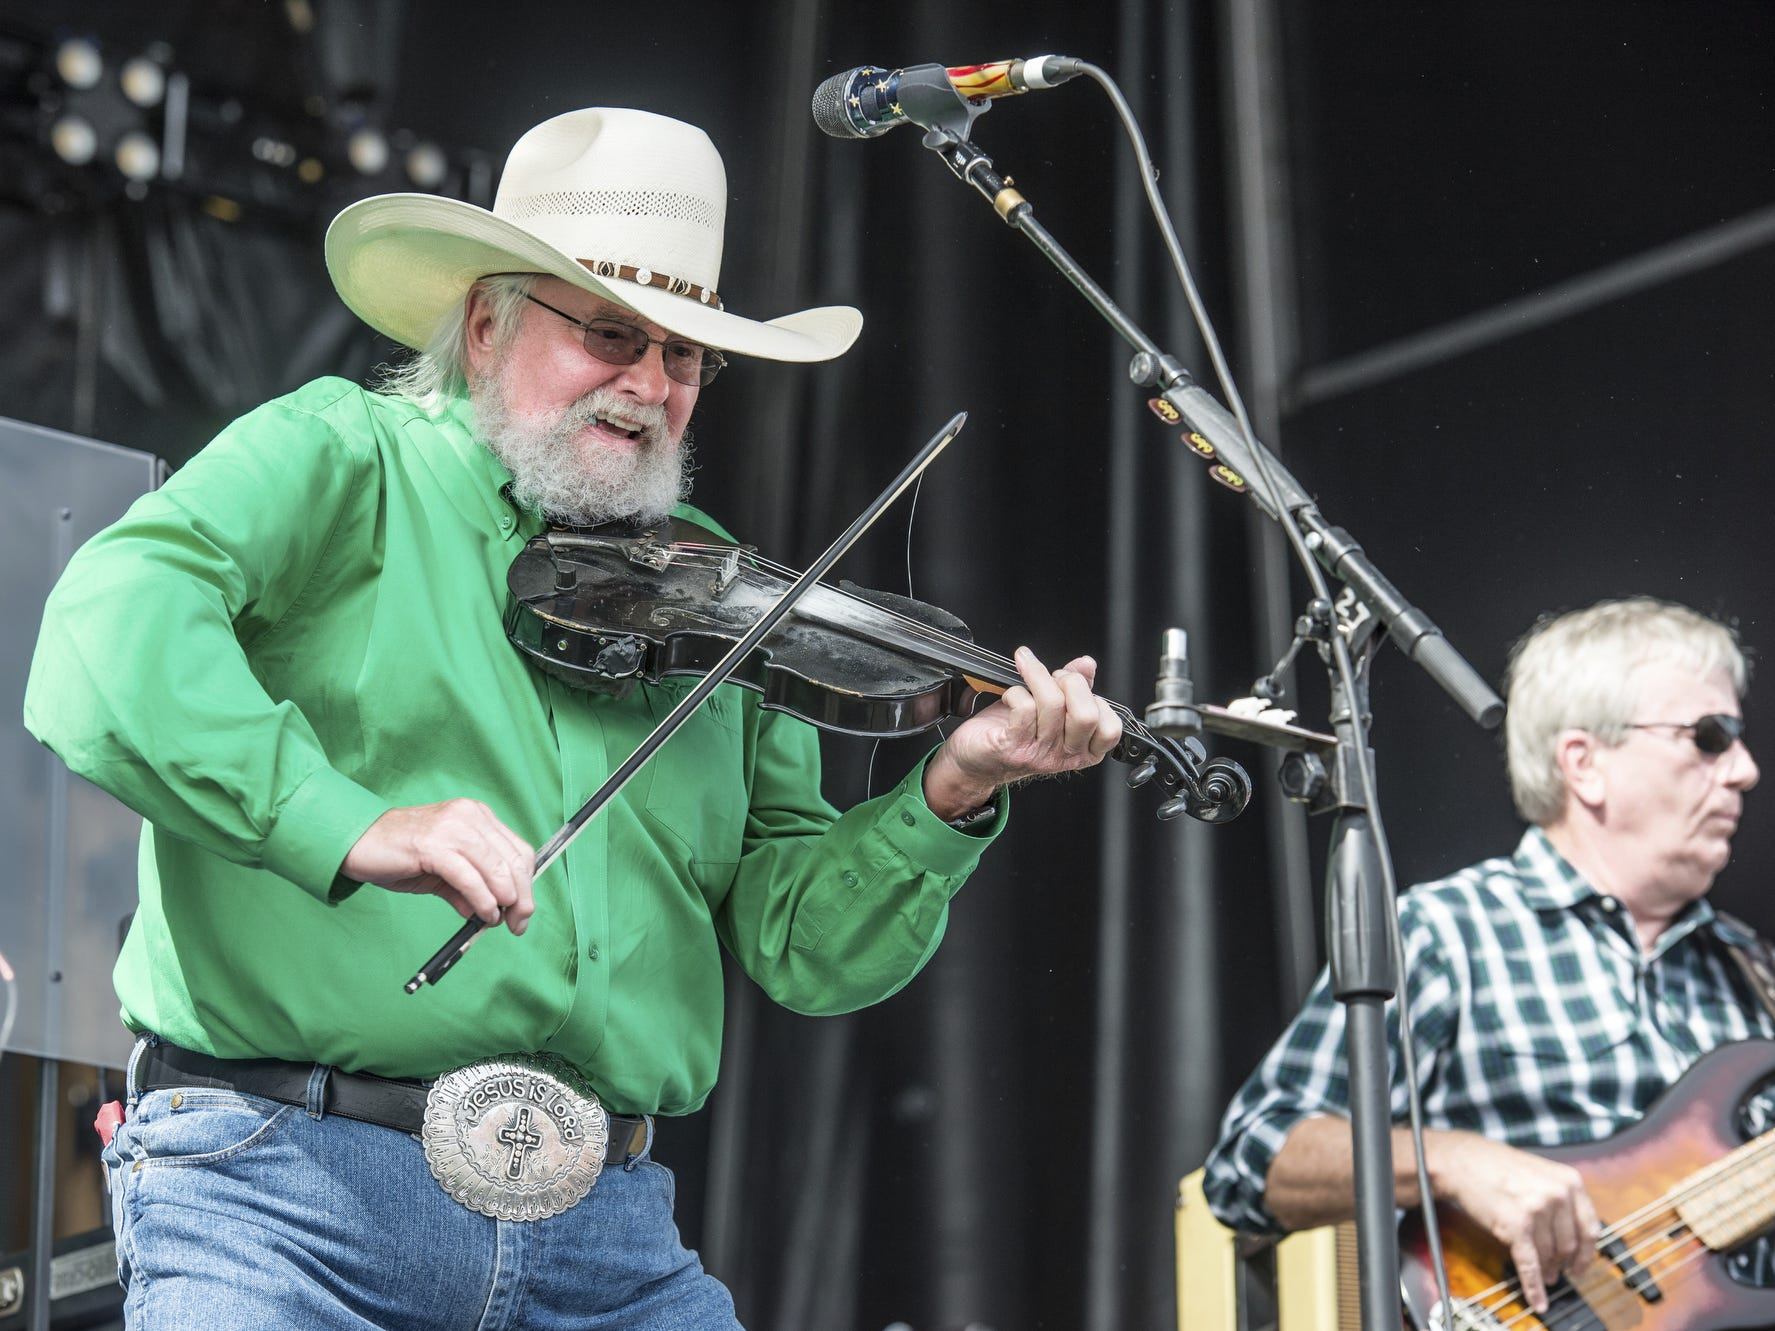 APRIL 9GRAND OLE OPRY WITH CHARLIE DANIELS BAND, MORE: 7 p.m. Grand Ole Opry House, $40-$110, opry.com